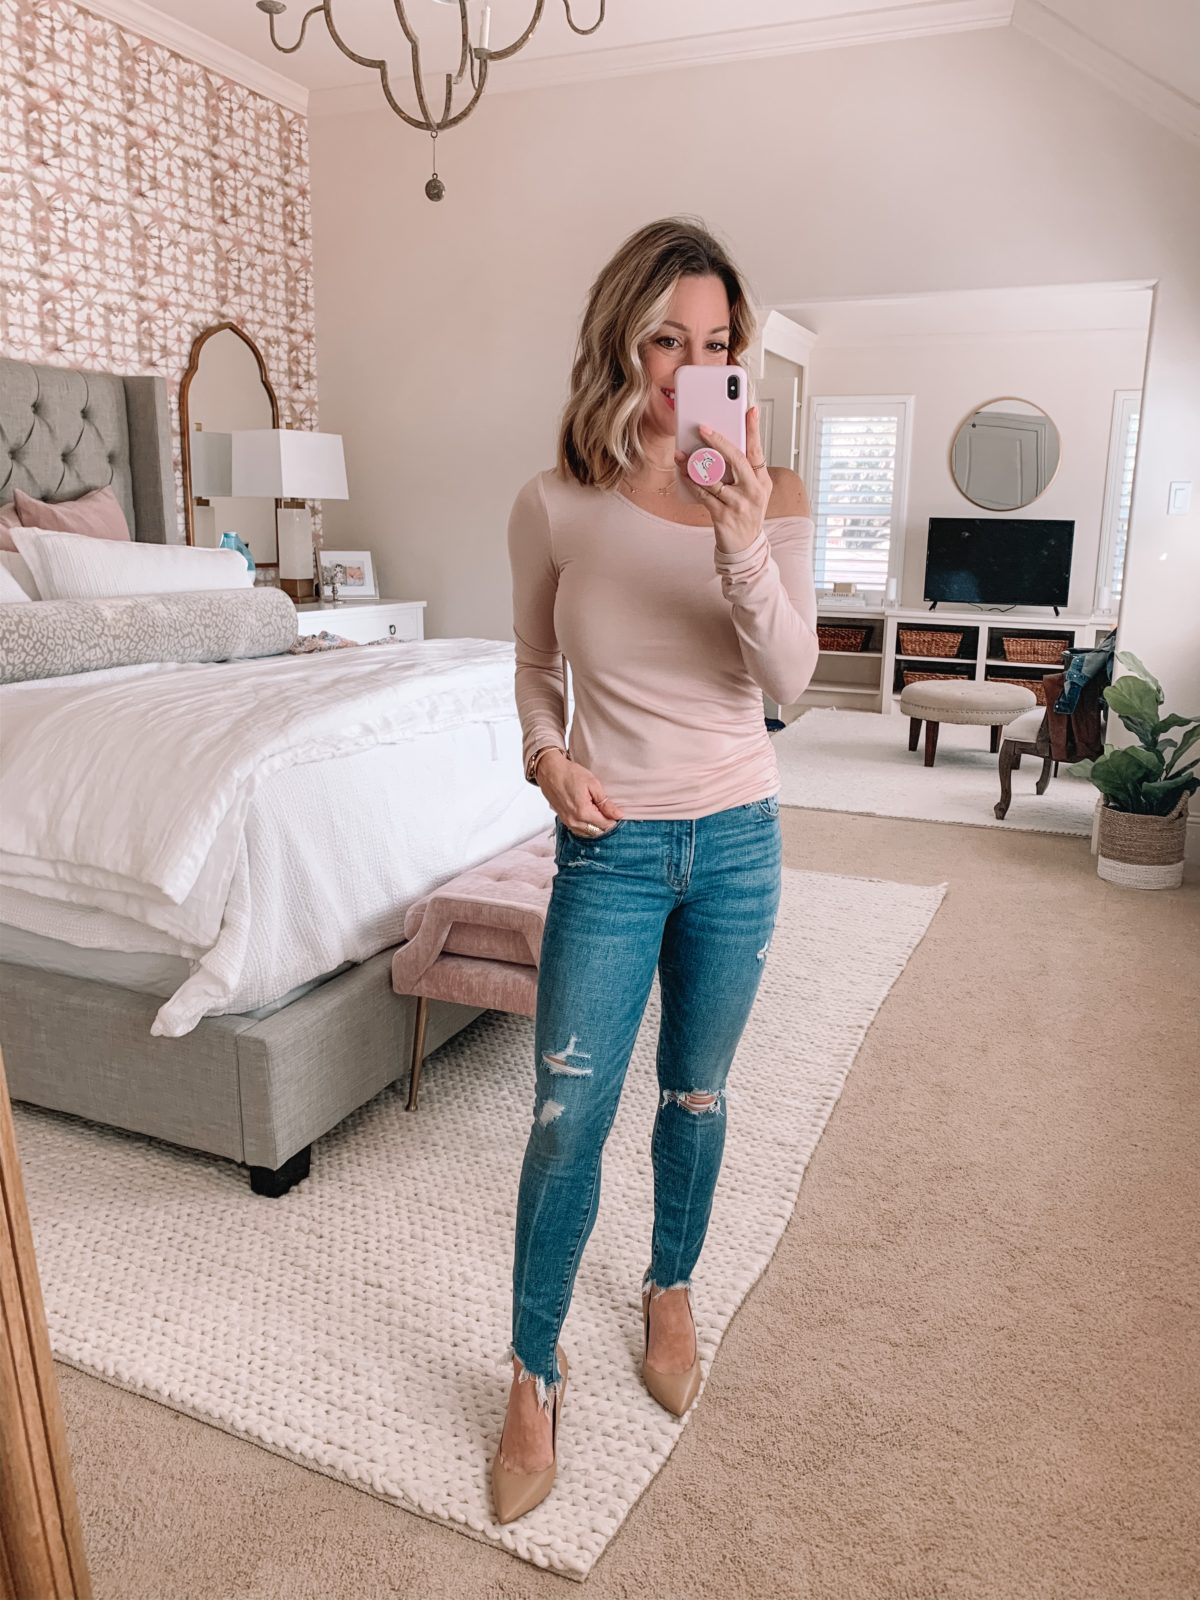 One Shoulder Long Sleeve Top Fitted, Distressed Skinny Jeans, Nude Pumps